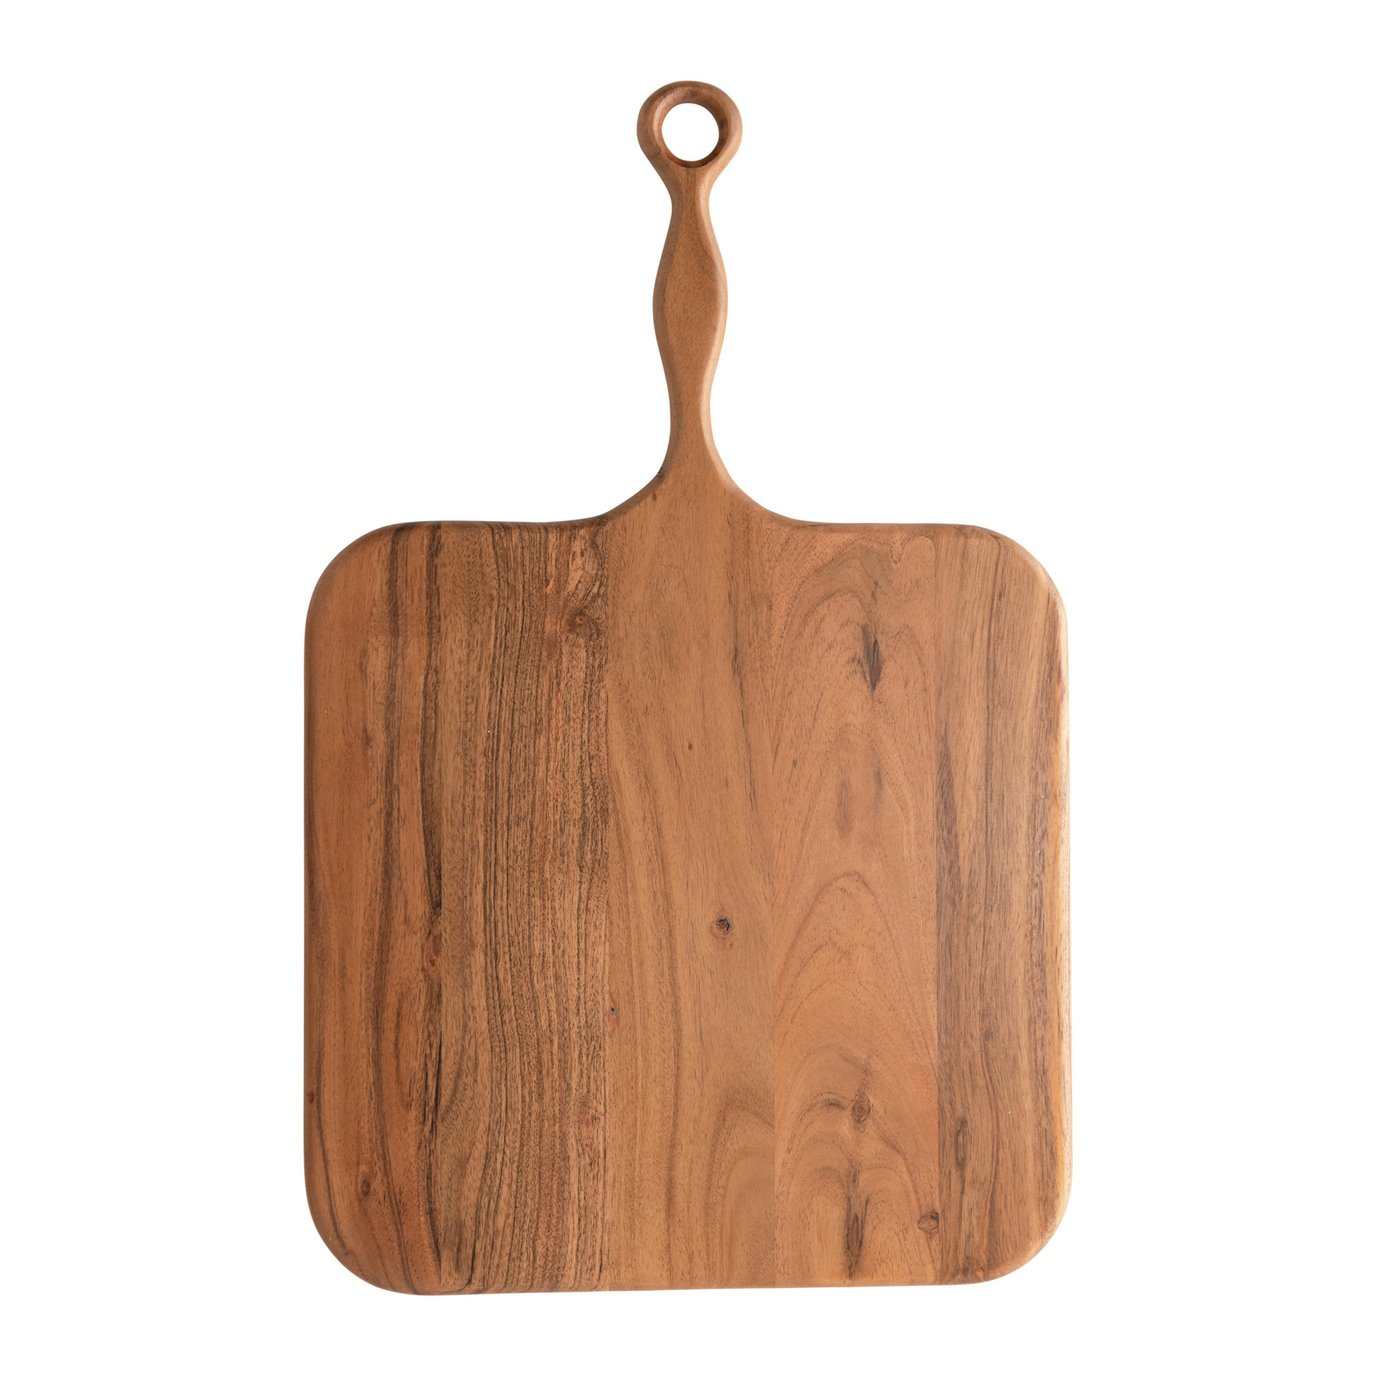 Acacia Wood Cheese/Cutting Board with Handle